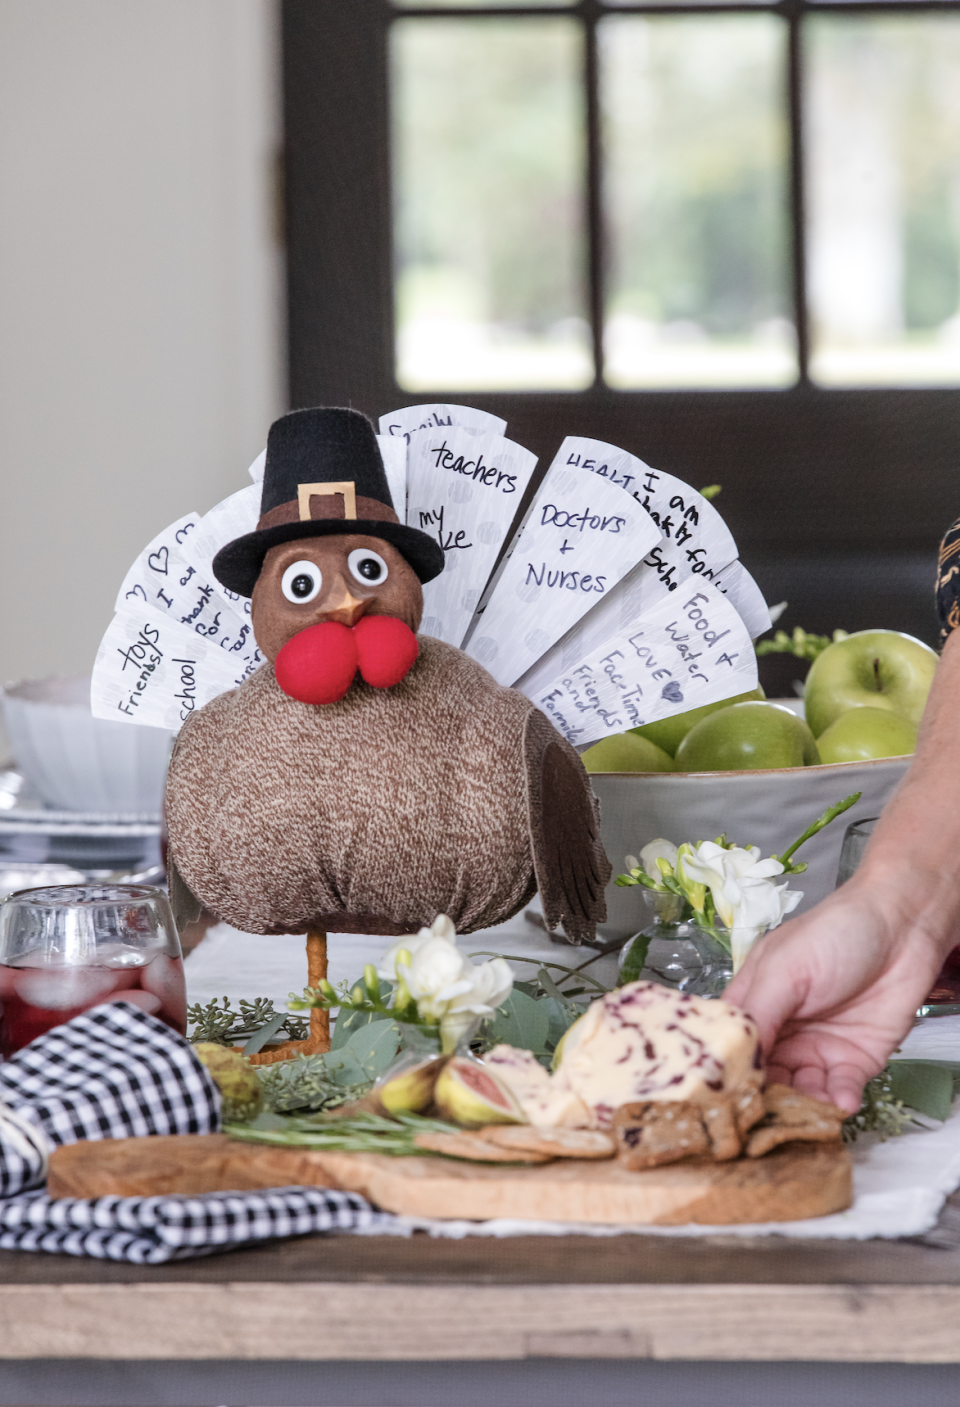 """<p><strong>TURKEY ON THE TABLE</strong></p><p>amazon.com</p><p><strong>$39.99</strong></p><p><a href=""""https://www.amazon.com/dp/B01N1GH4C8?tag=syn-yahoo-20&ascsubtag=%5Bartid%7C10055.g.34450121%5Bsrc%7Cyahoo-us"""" rel=""""nofollow noopener"""" target=""""_blank"""" data-ylk=""""slk:Shop Now"""" class=""""link rapid-noclick-resp"""">Shop Now</a></p>"""